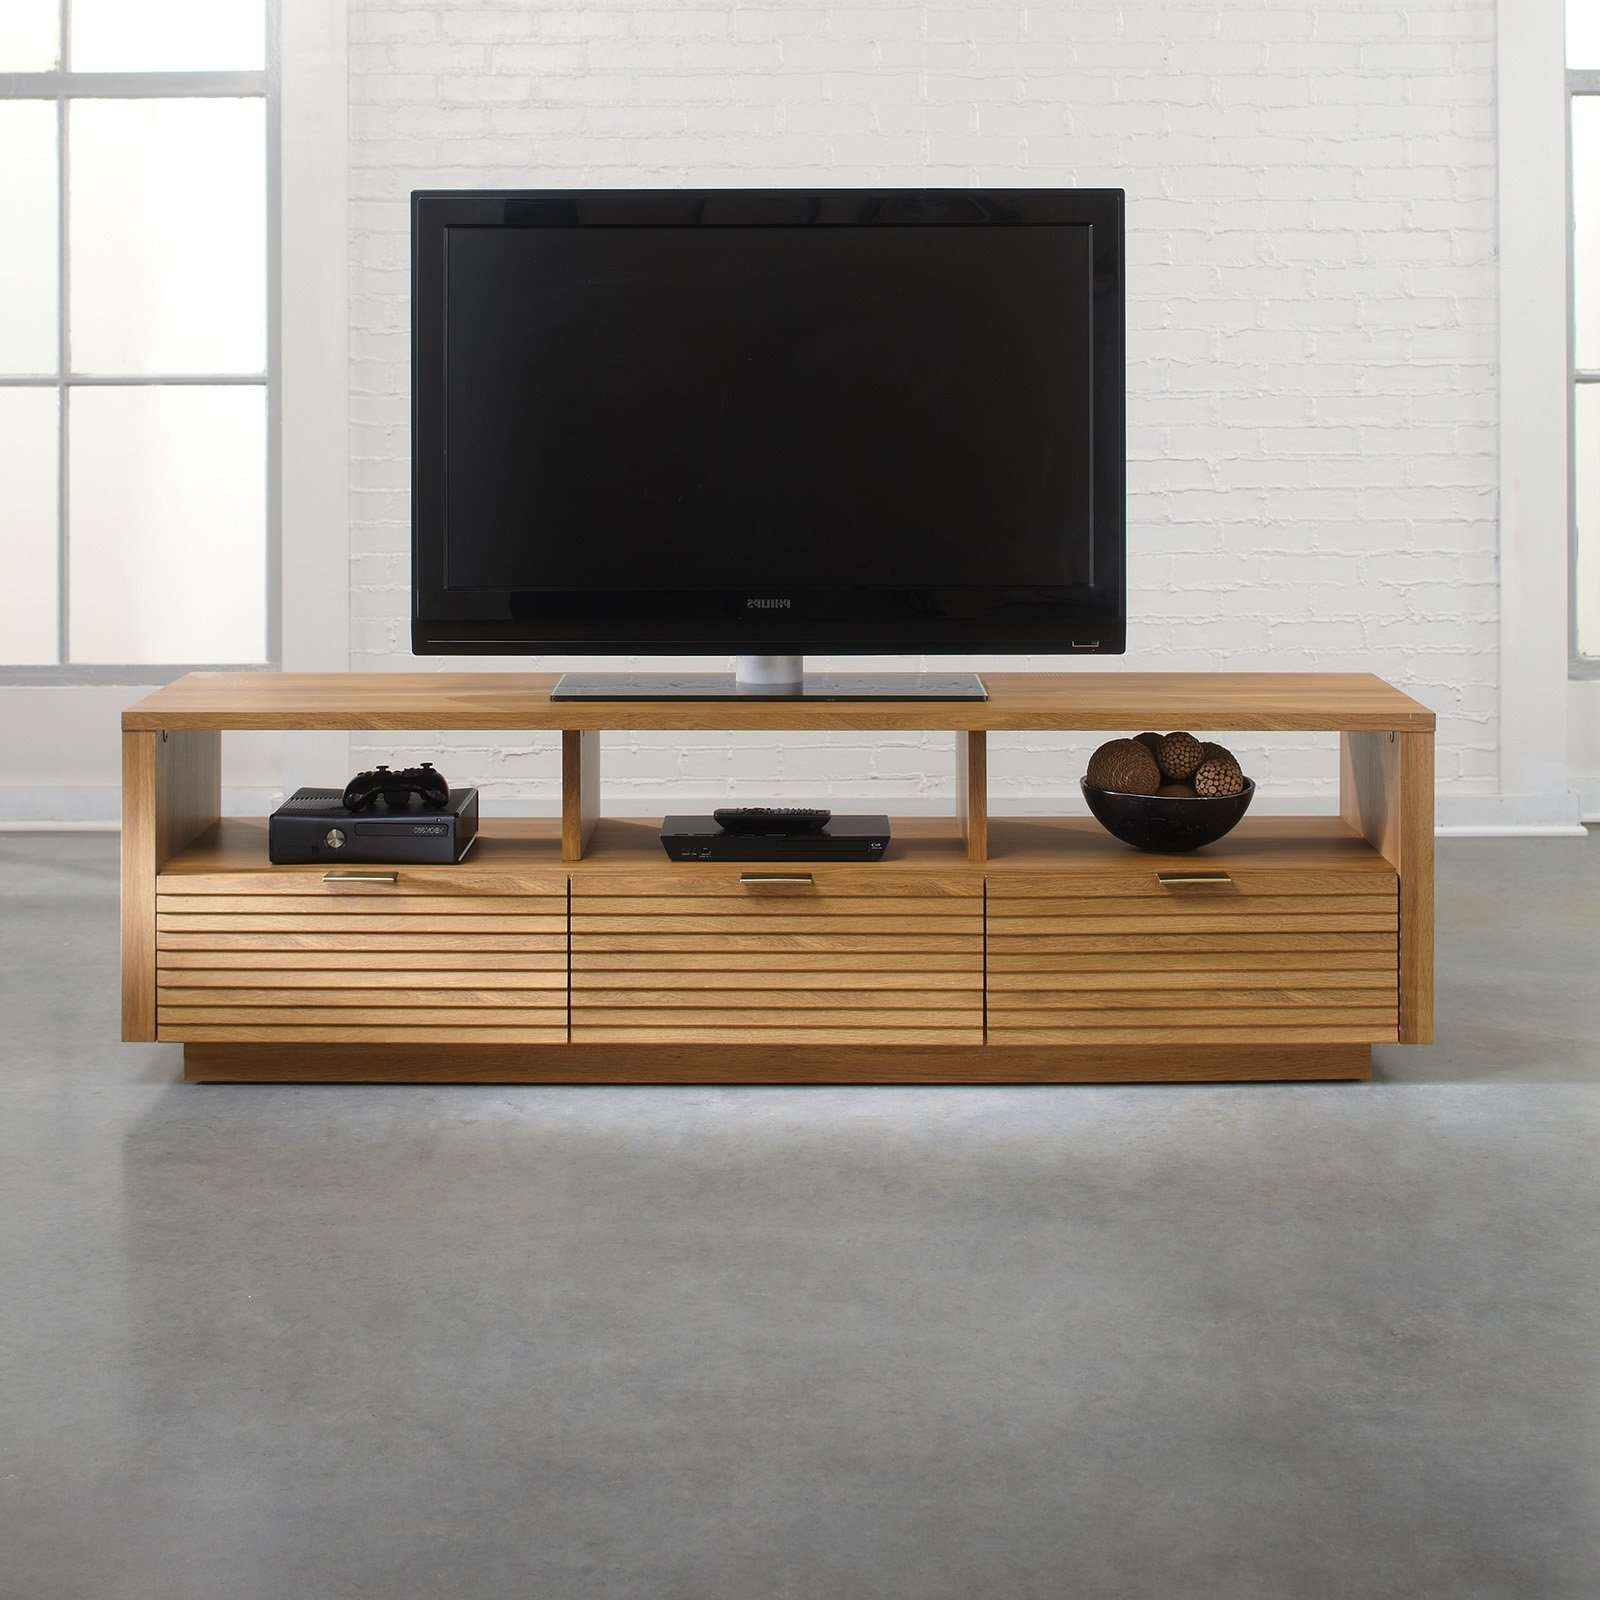 Sauder Soft Modern Entertainment Credenza – Pale Oak | Hayneedle Throughout Modern Oak Tv Stands (View 5 of 15)